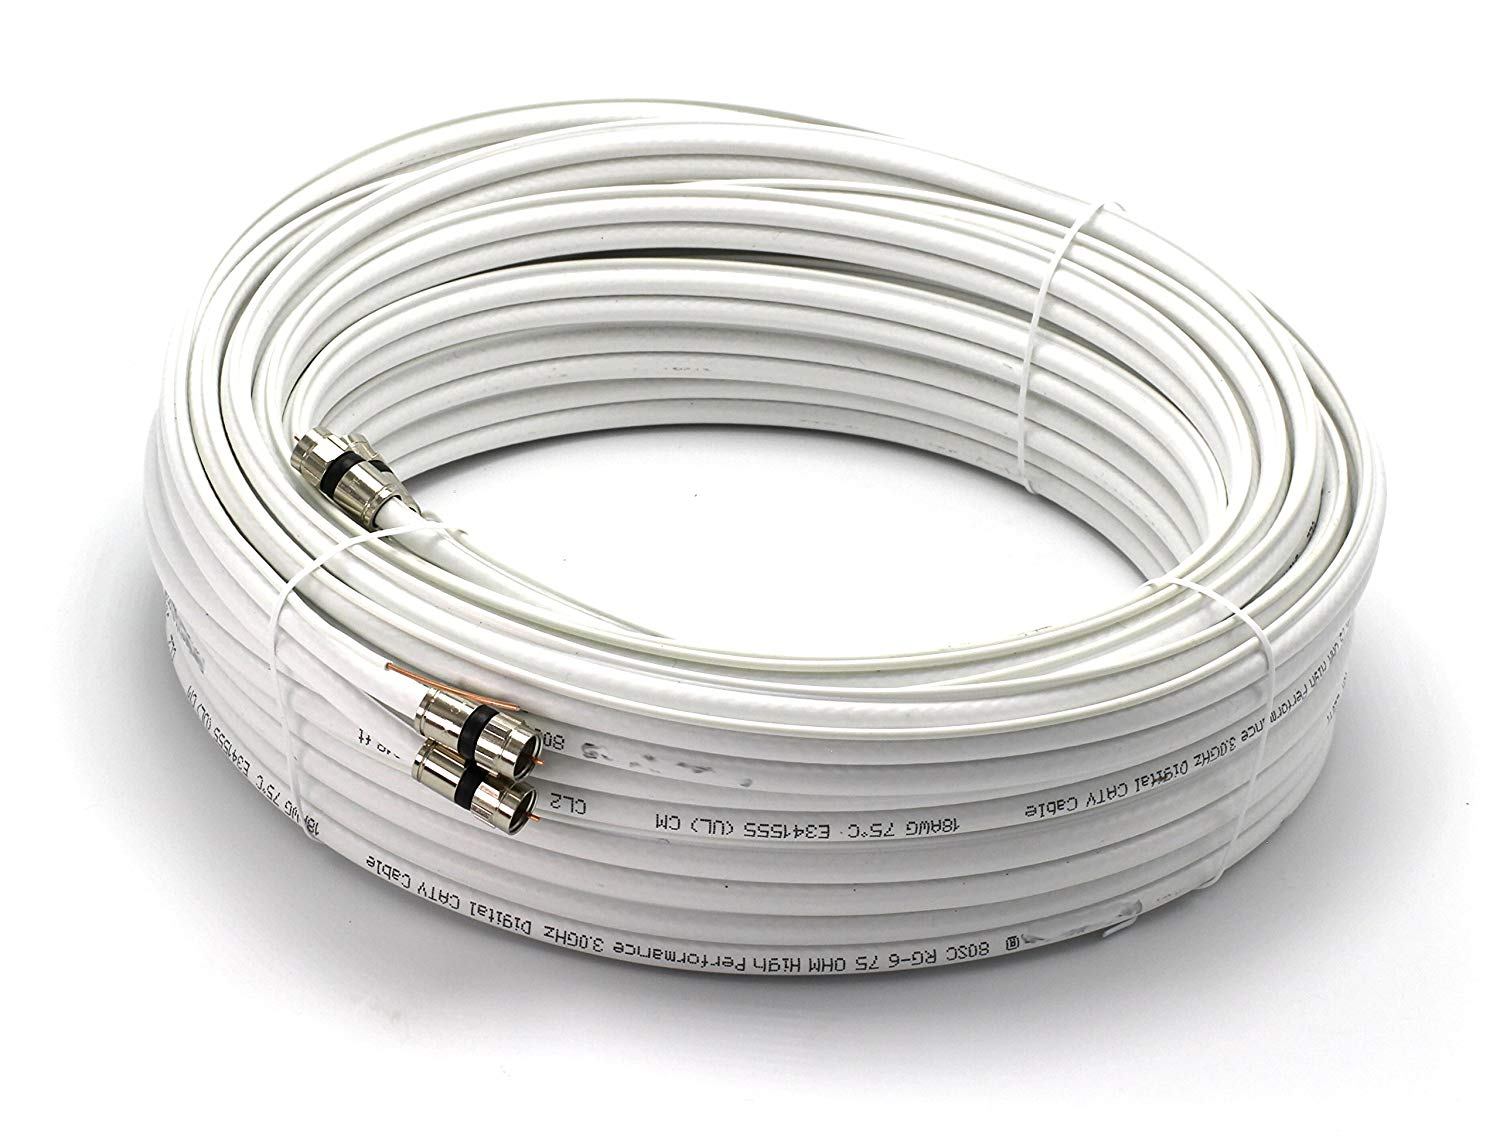 RG6 HD VIDEO COAX Satellite Cable Antenna WIRE PROFESSIONAL COMPRESSION FITTINGS